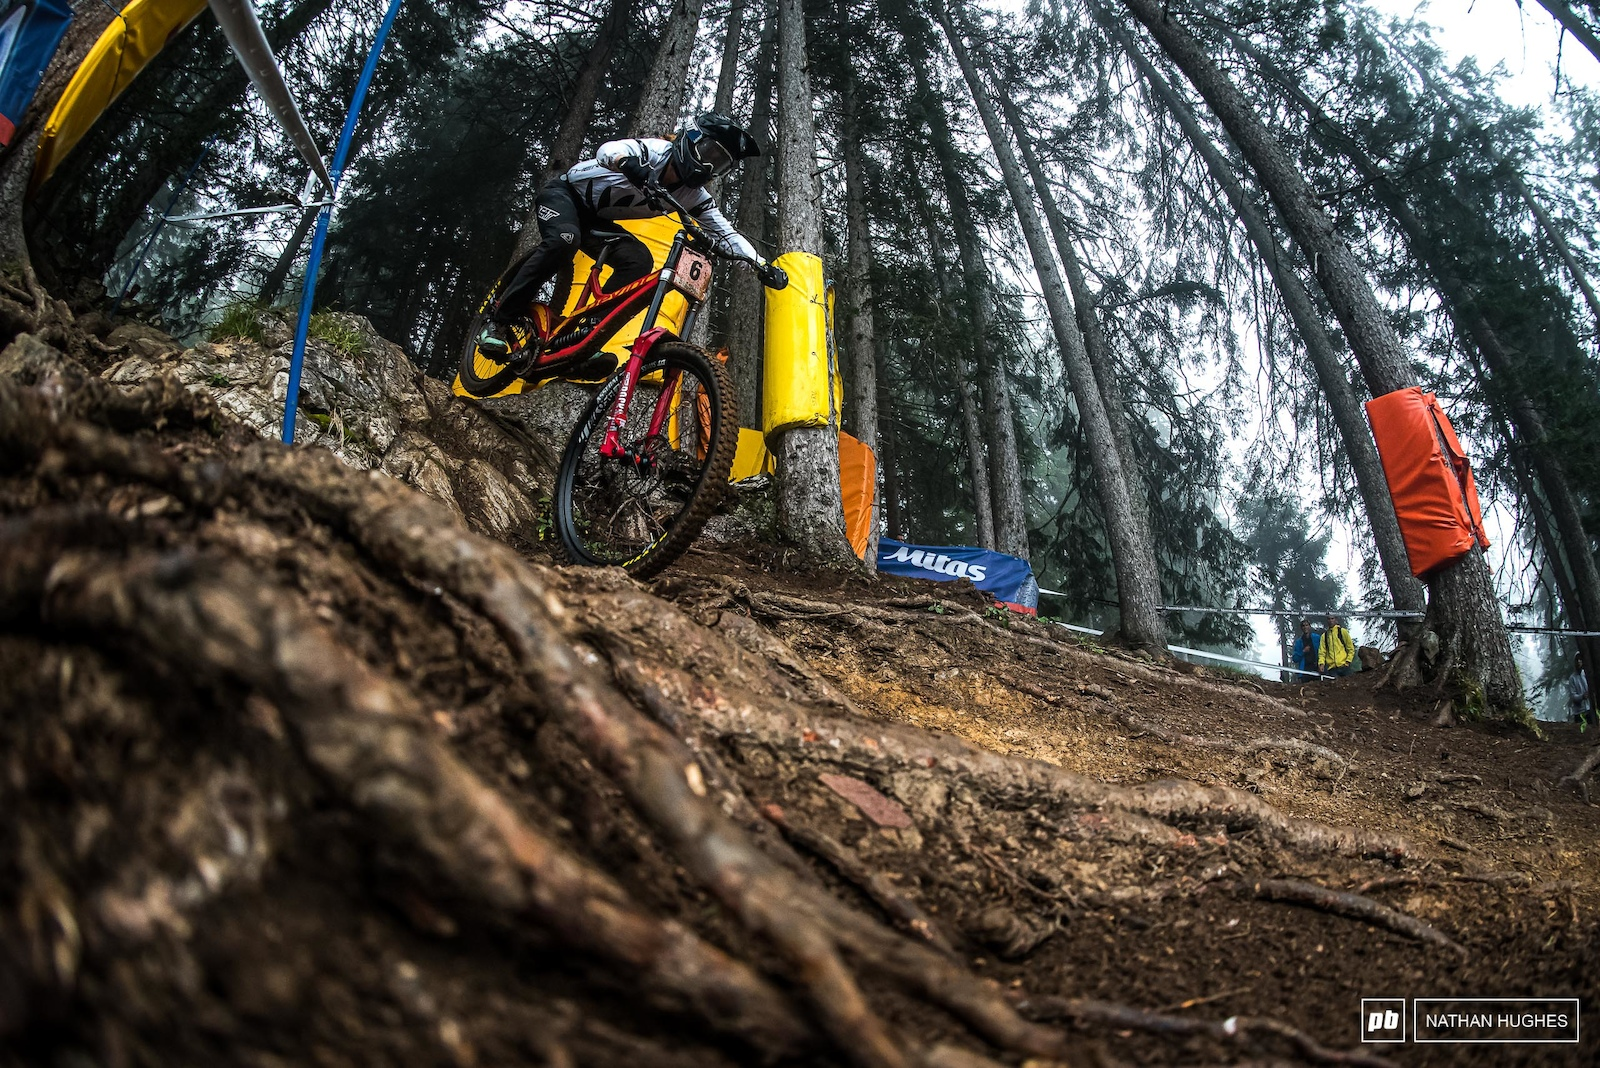 Kate Weatherly struck back with her first podium since Leogang on the slippery Swiss roots.